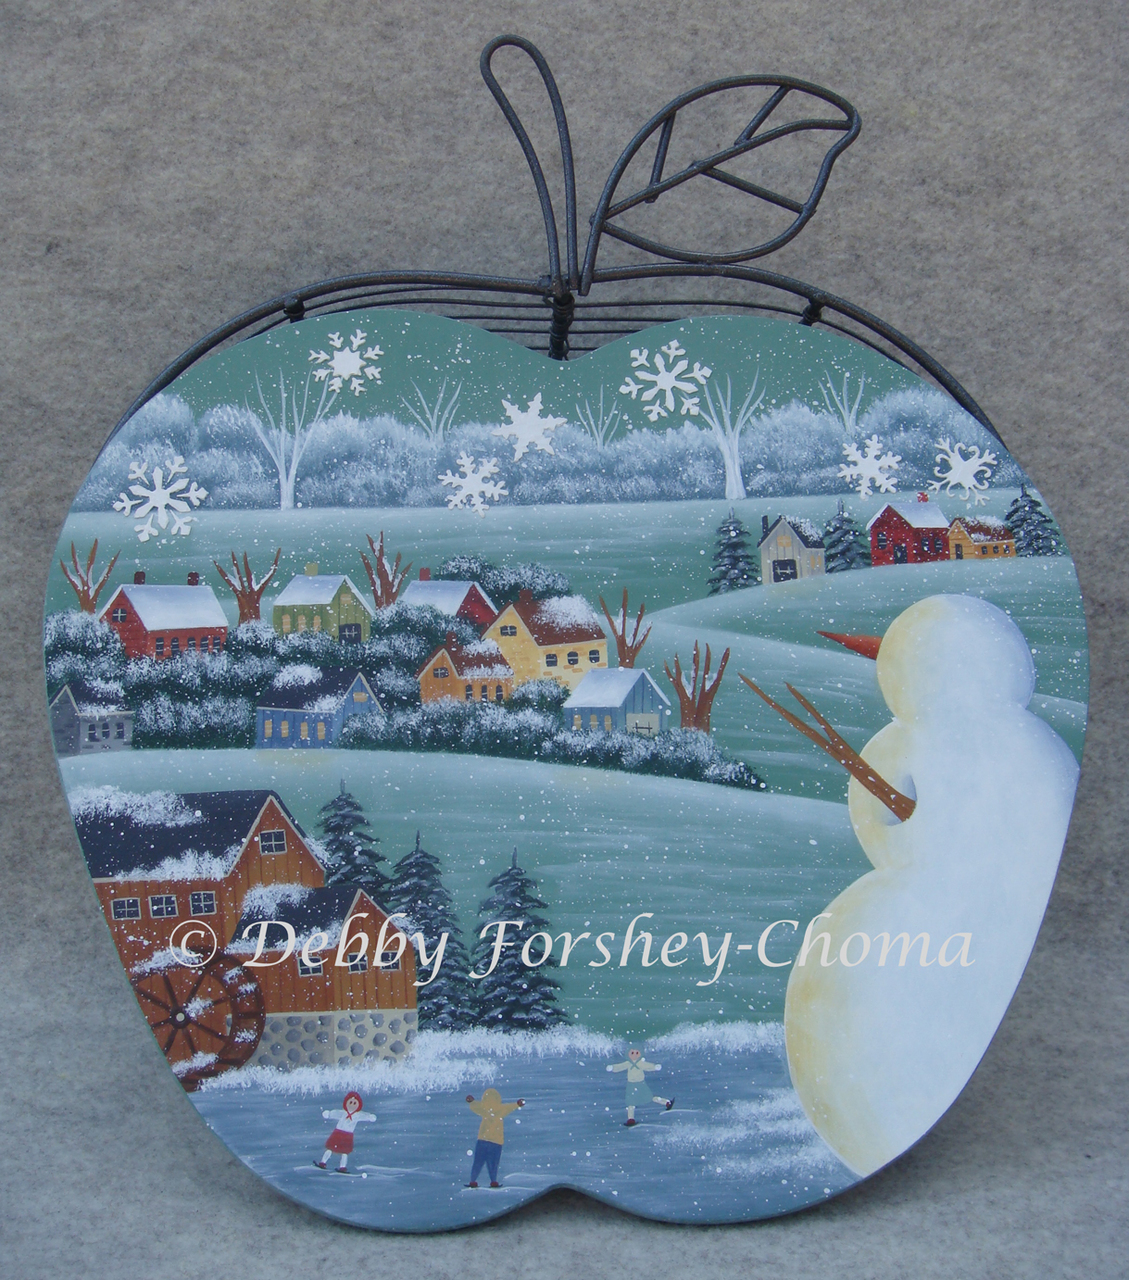 Watchful Snowman - E-Packet - Debby Forshey-Choma